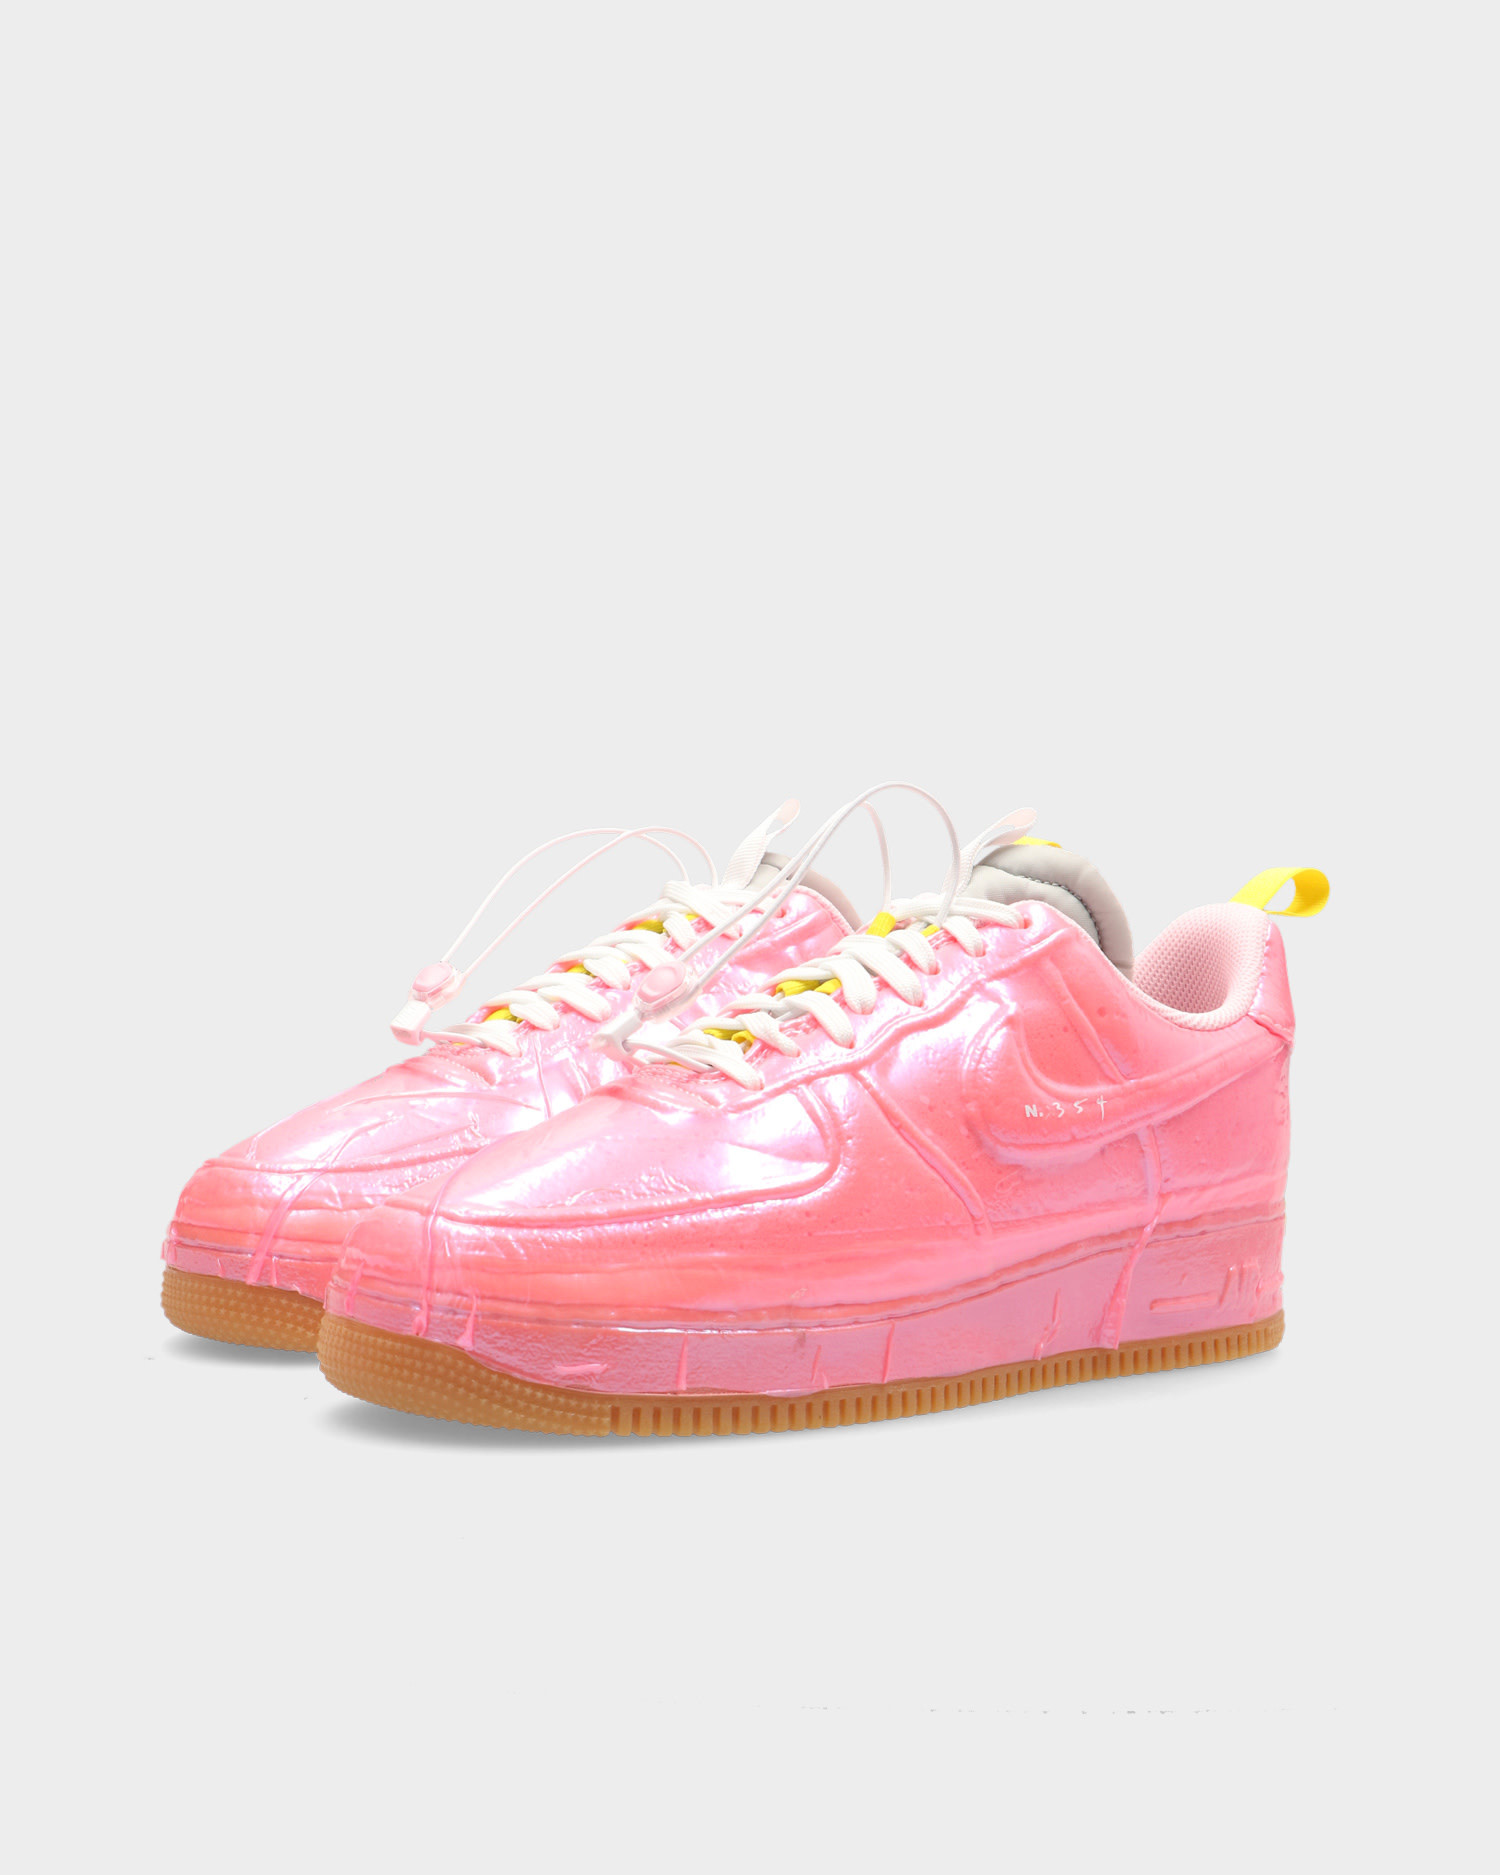 Nike Air Force 1 Experimental Racer Pink/Arctic Punch-Sail-Opti Yellow